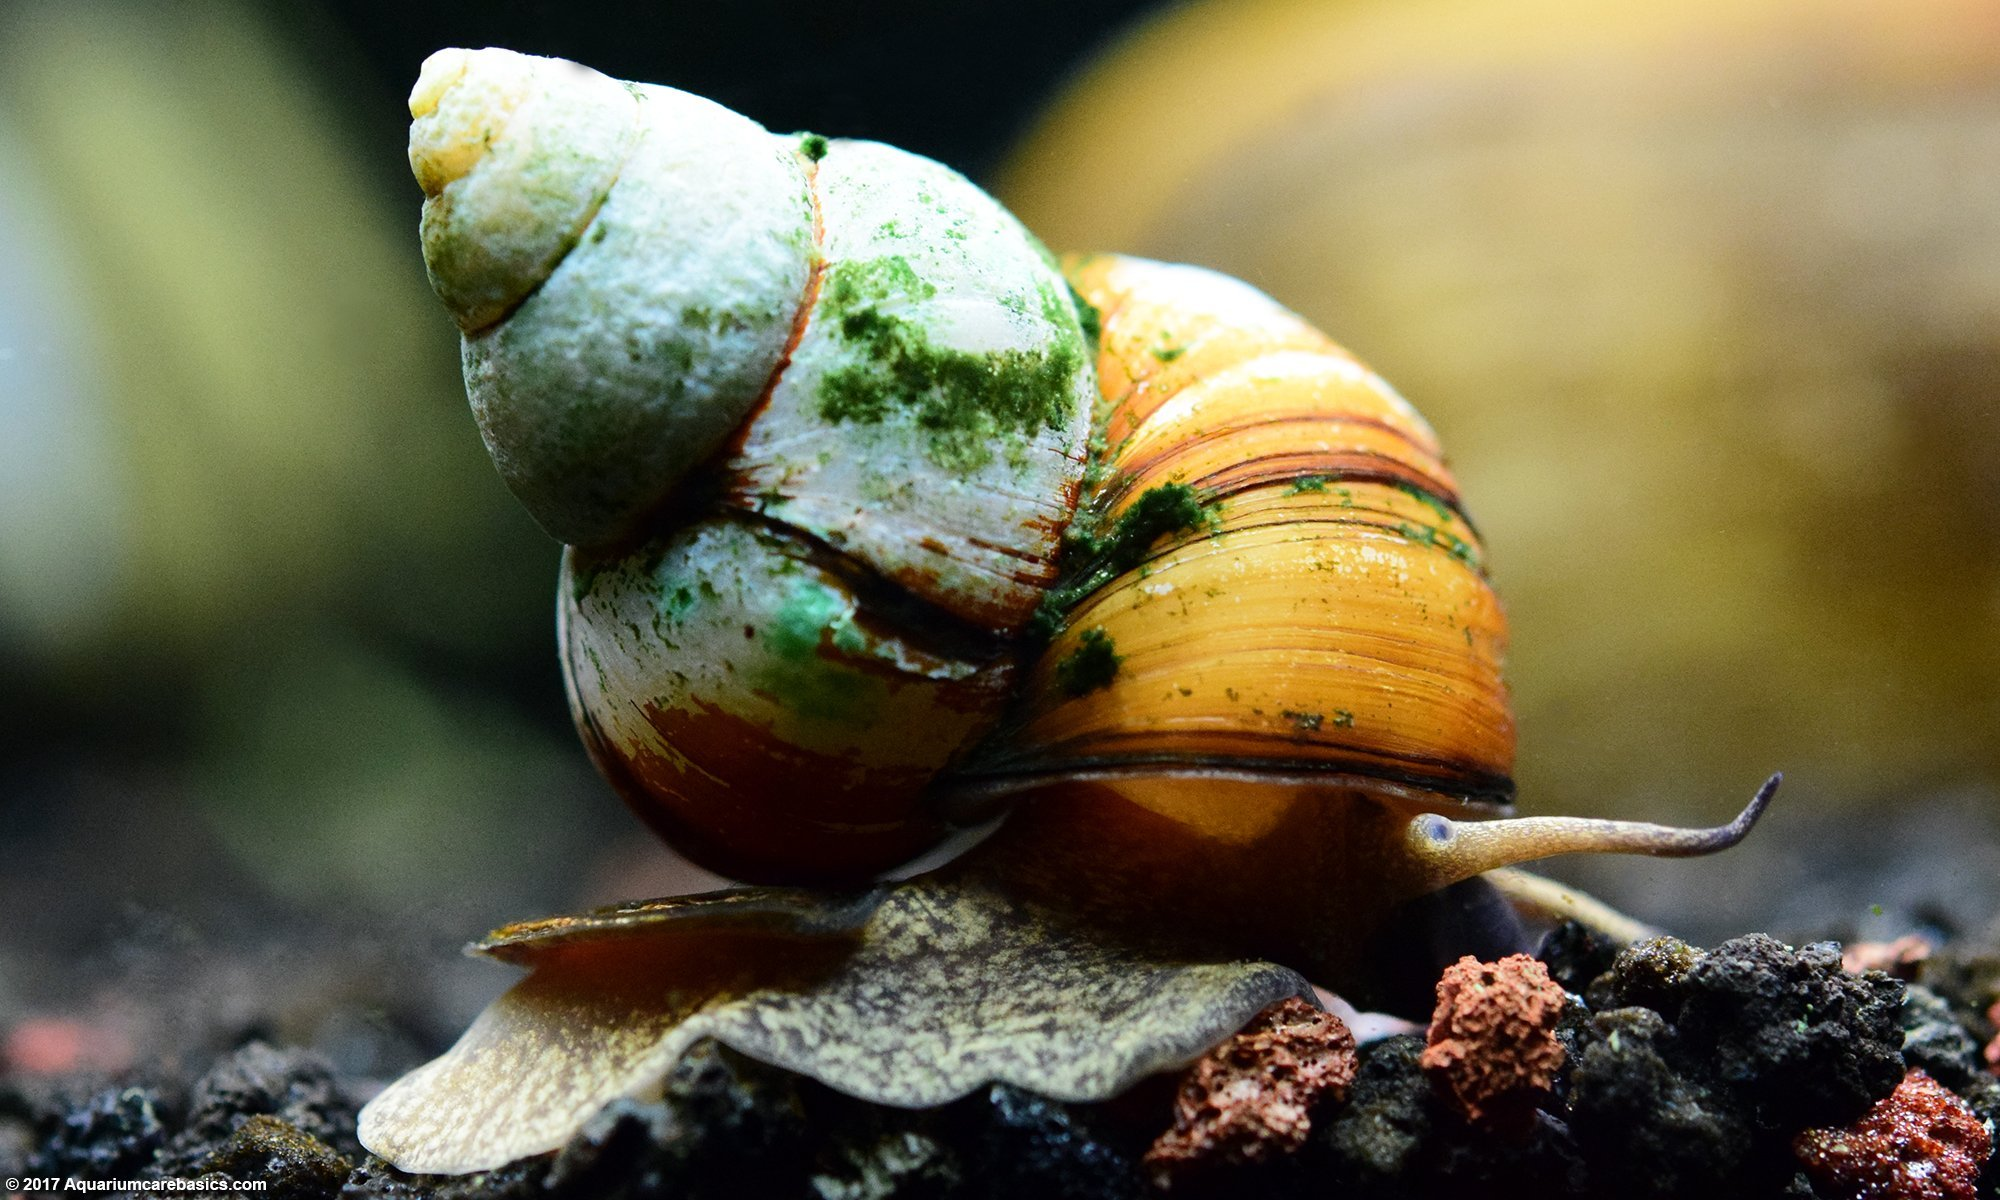 Do water snails reproduce asexually